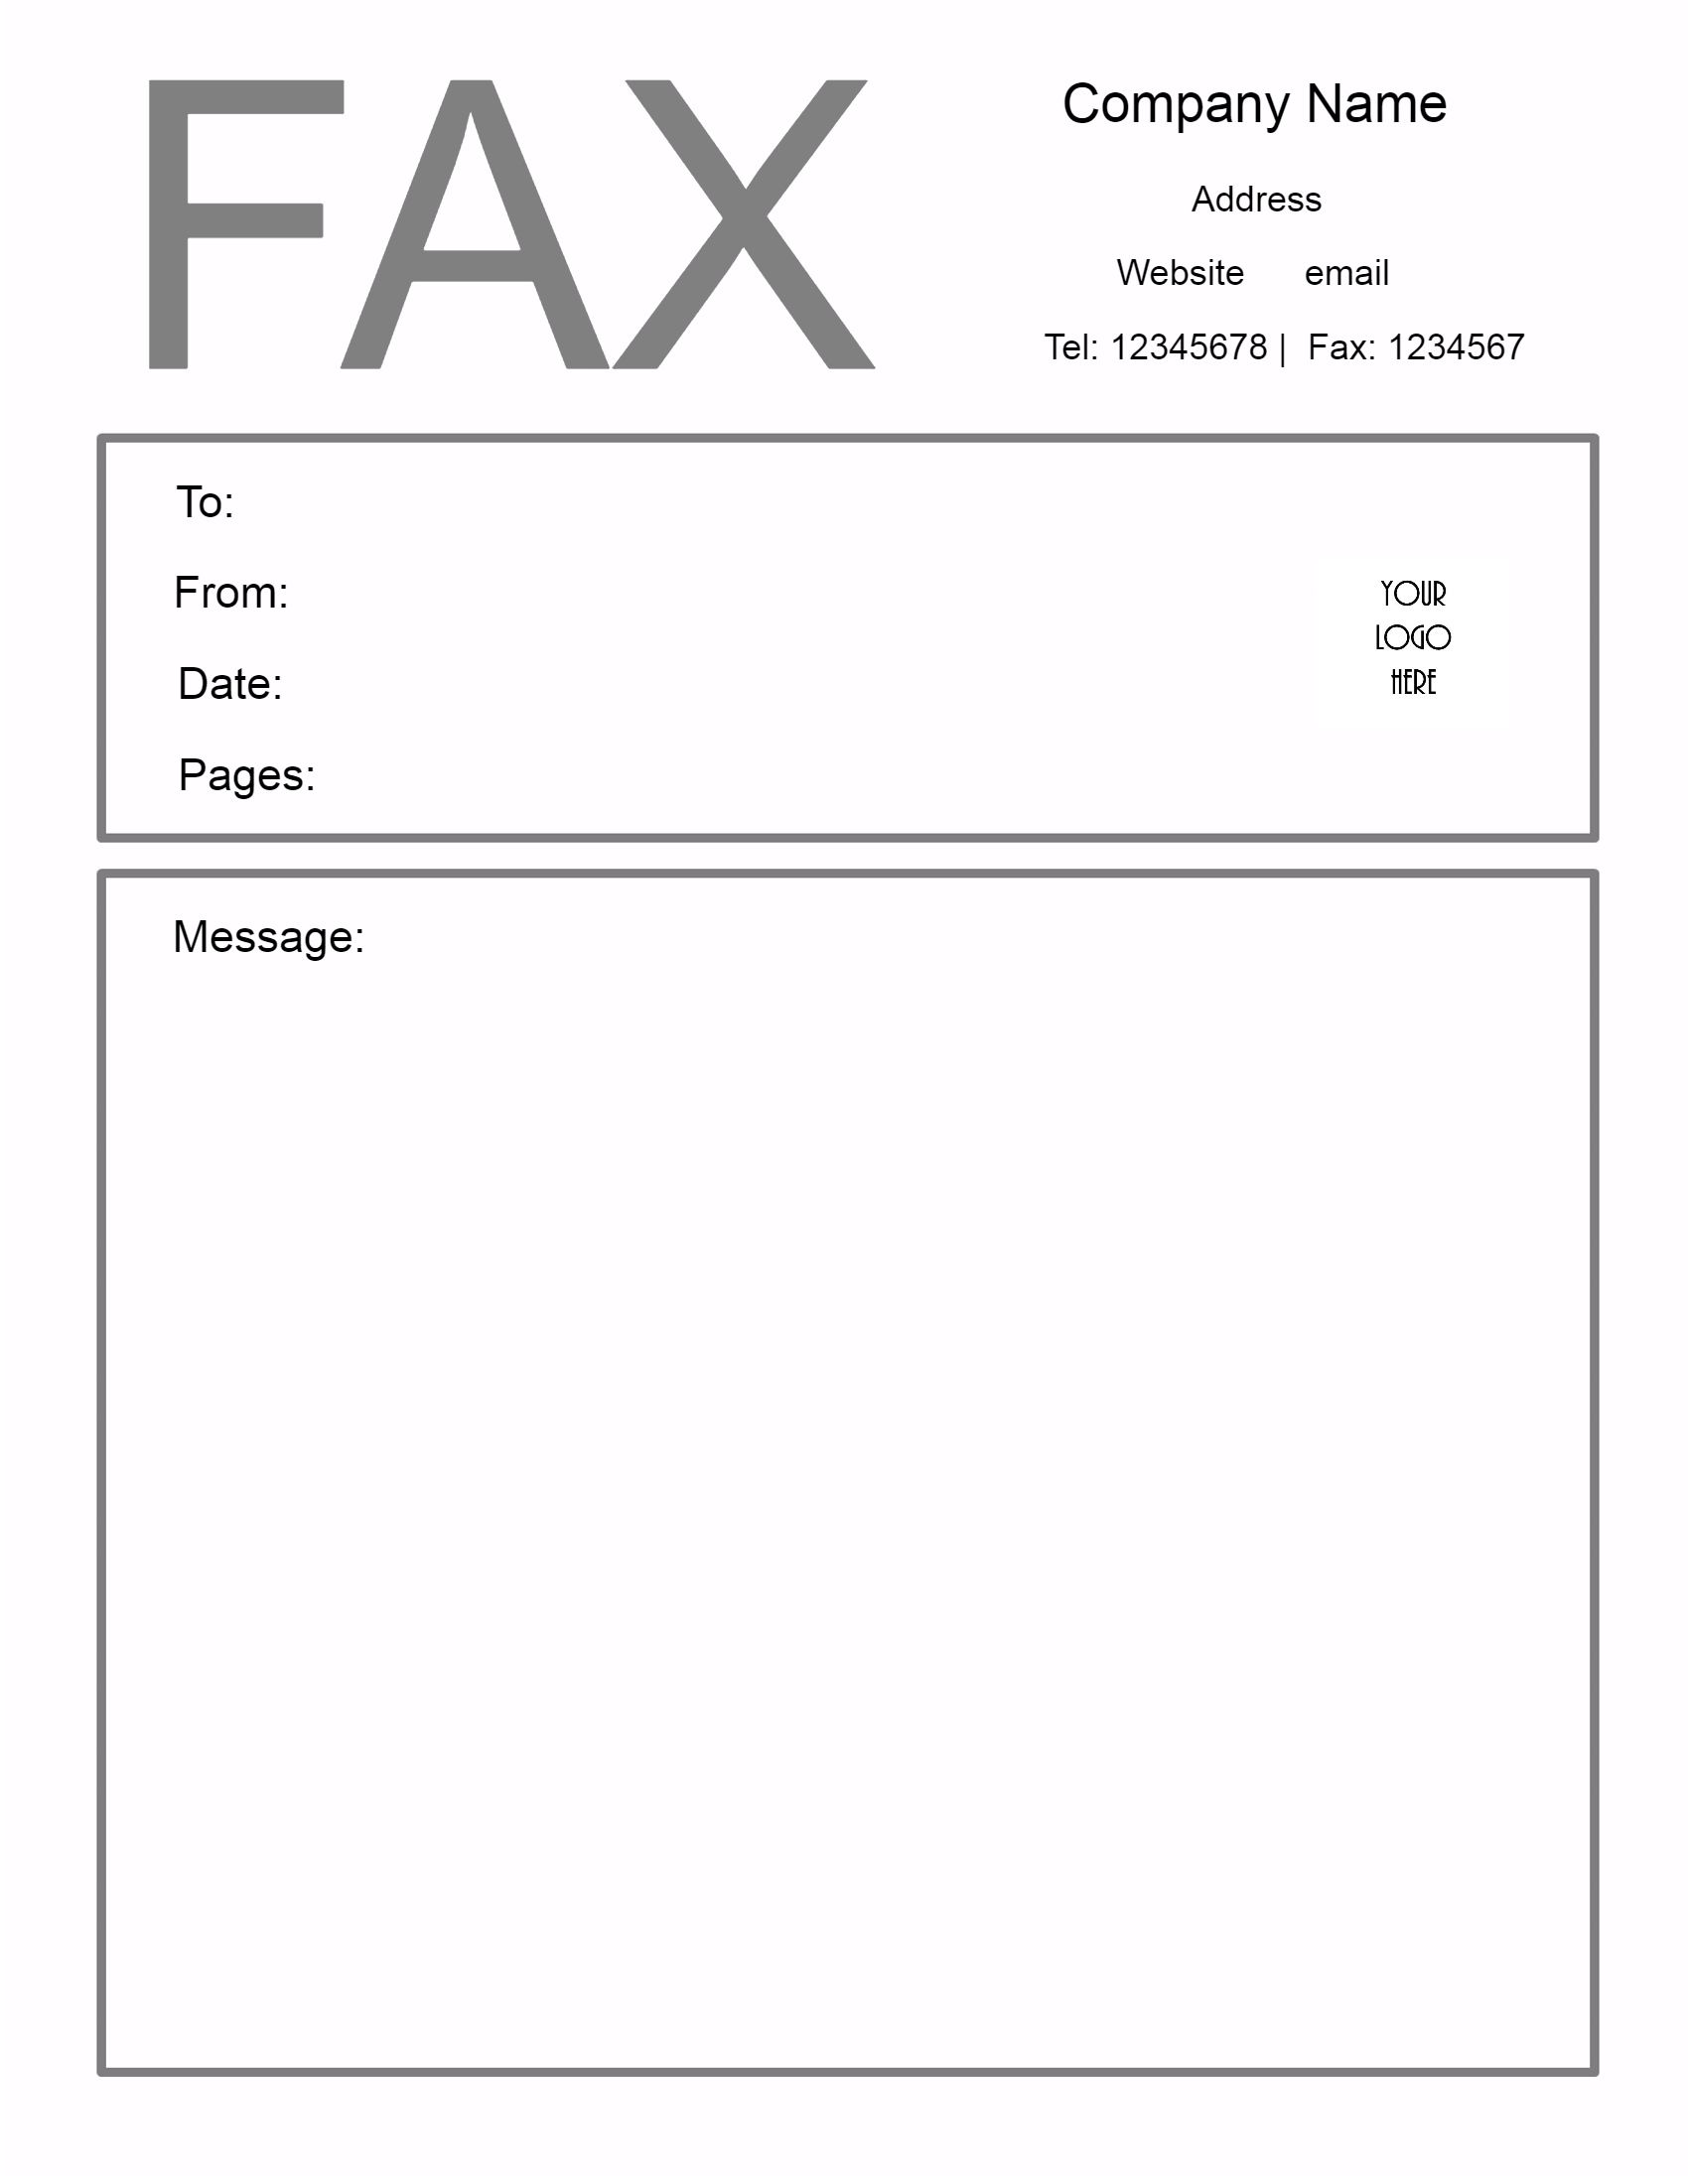 Doc Free Downloadable Fax Cover Sheet Free Fax Cover MyPaperlessFax  Fax Cover Letter Doc